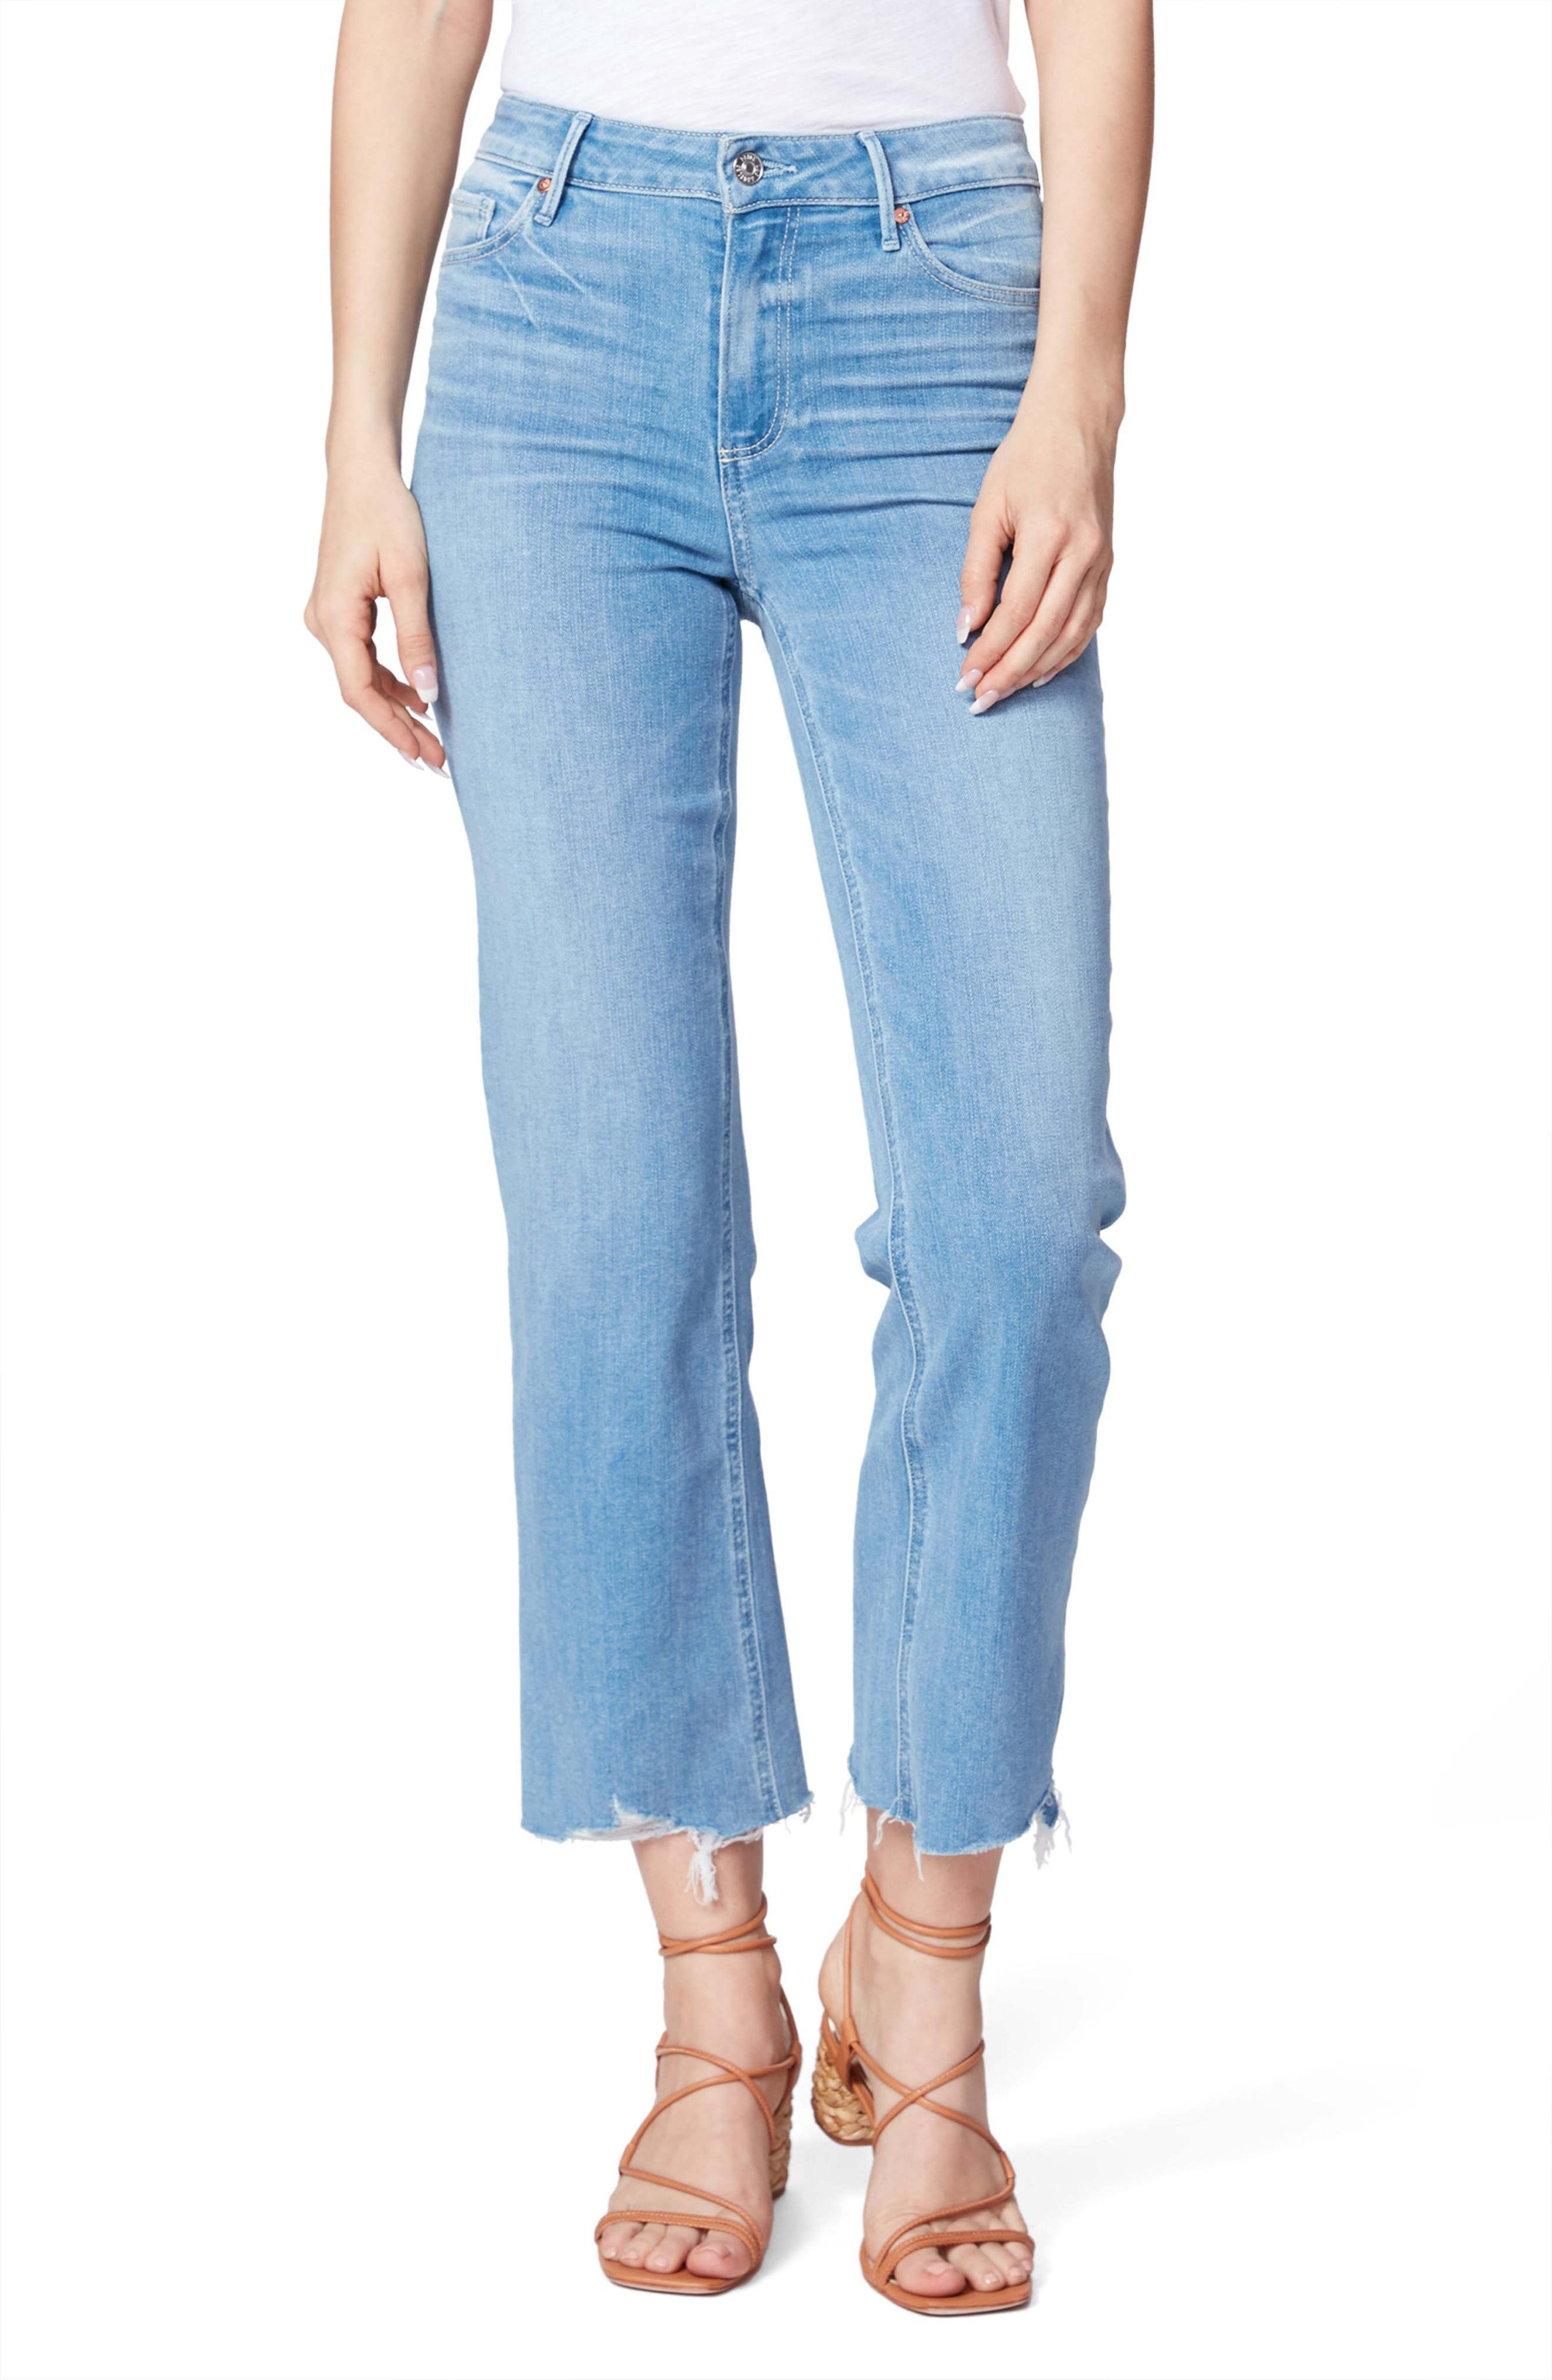 Image of PAIGE Atley High Waist Distressed Ankle Crop Flared Jeans